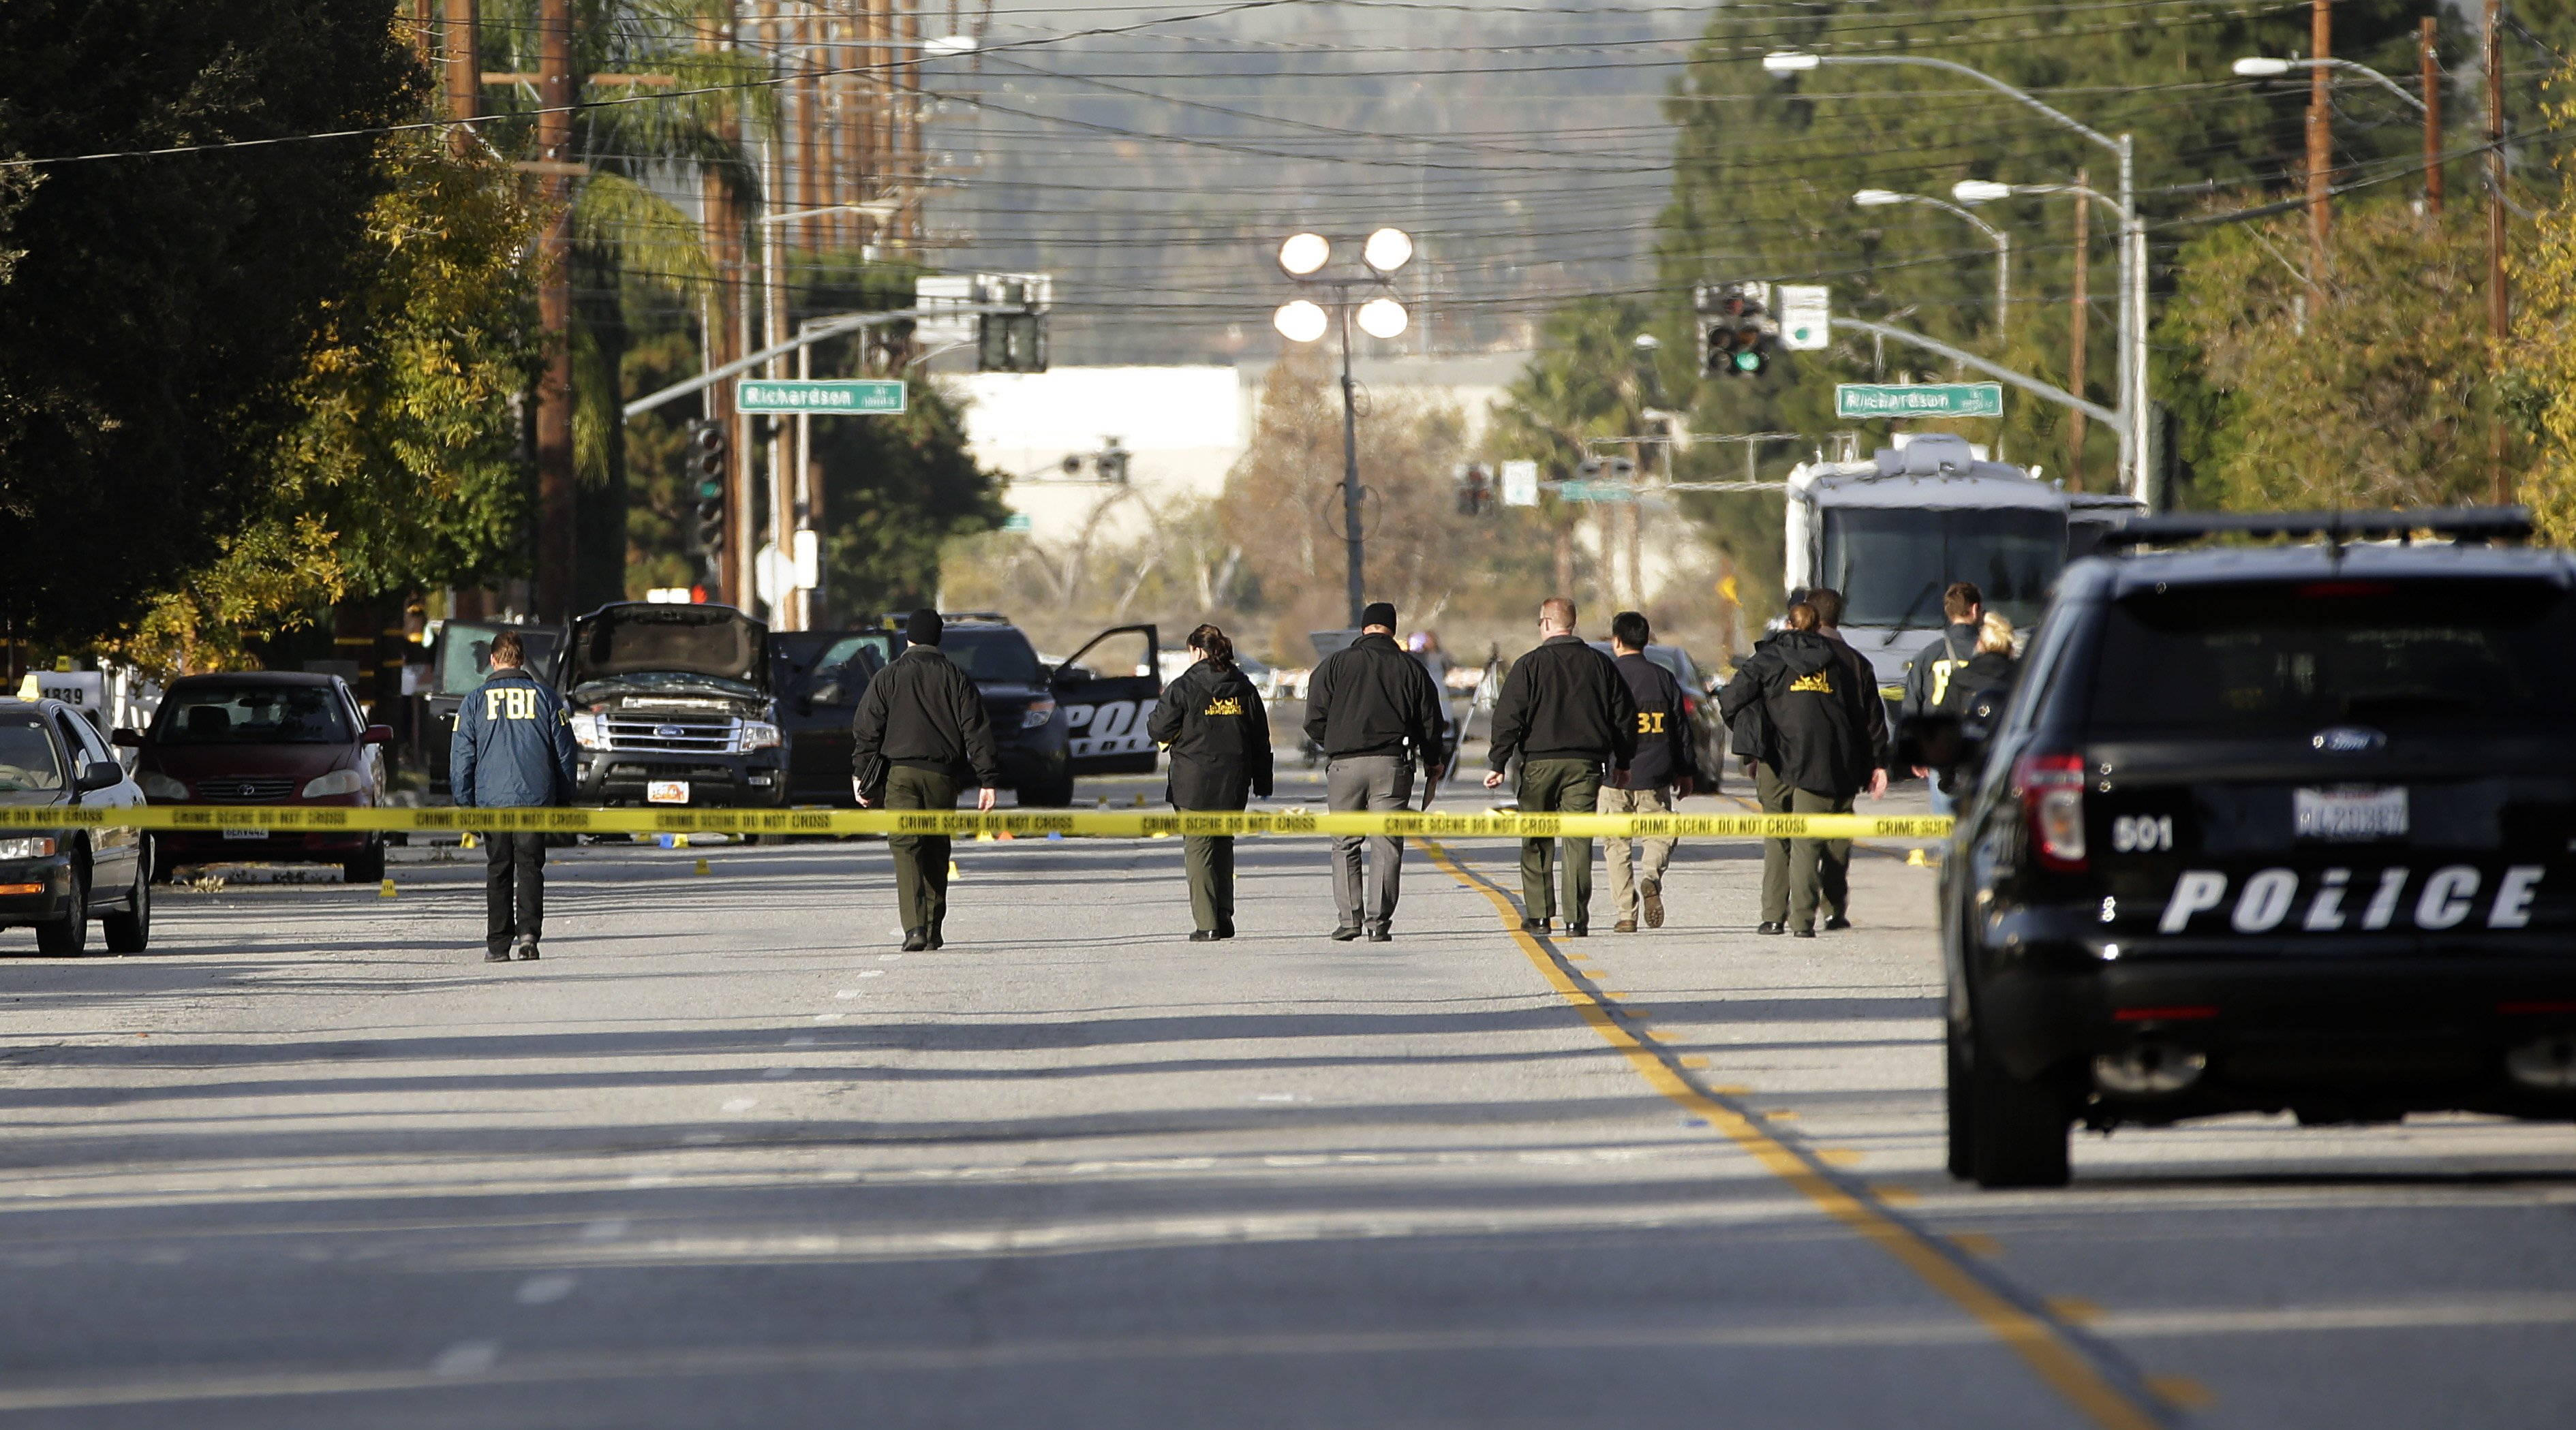 Investigators search for bullet casings at the scene where Wednesday's police shootout with suspects took place in San Bernardino, Calif on Dec. 3, 2015.